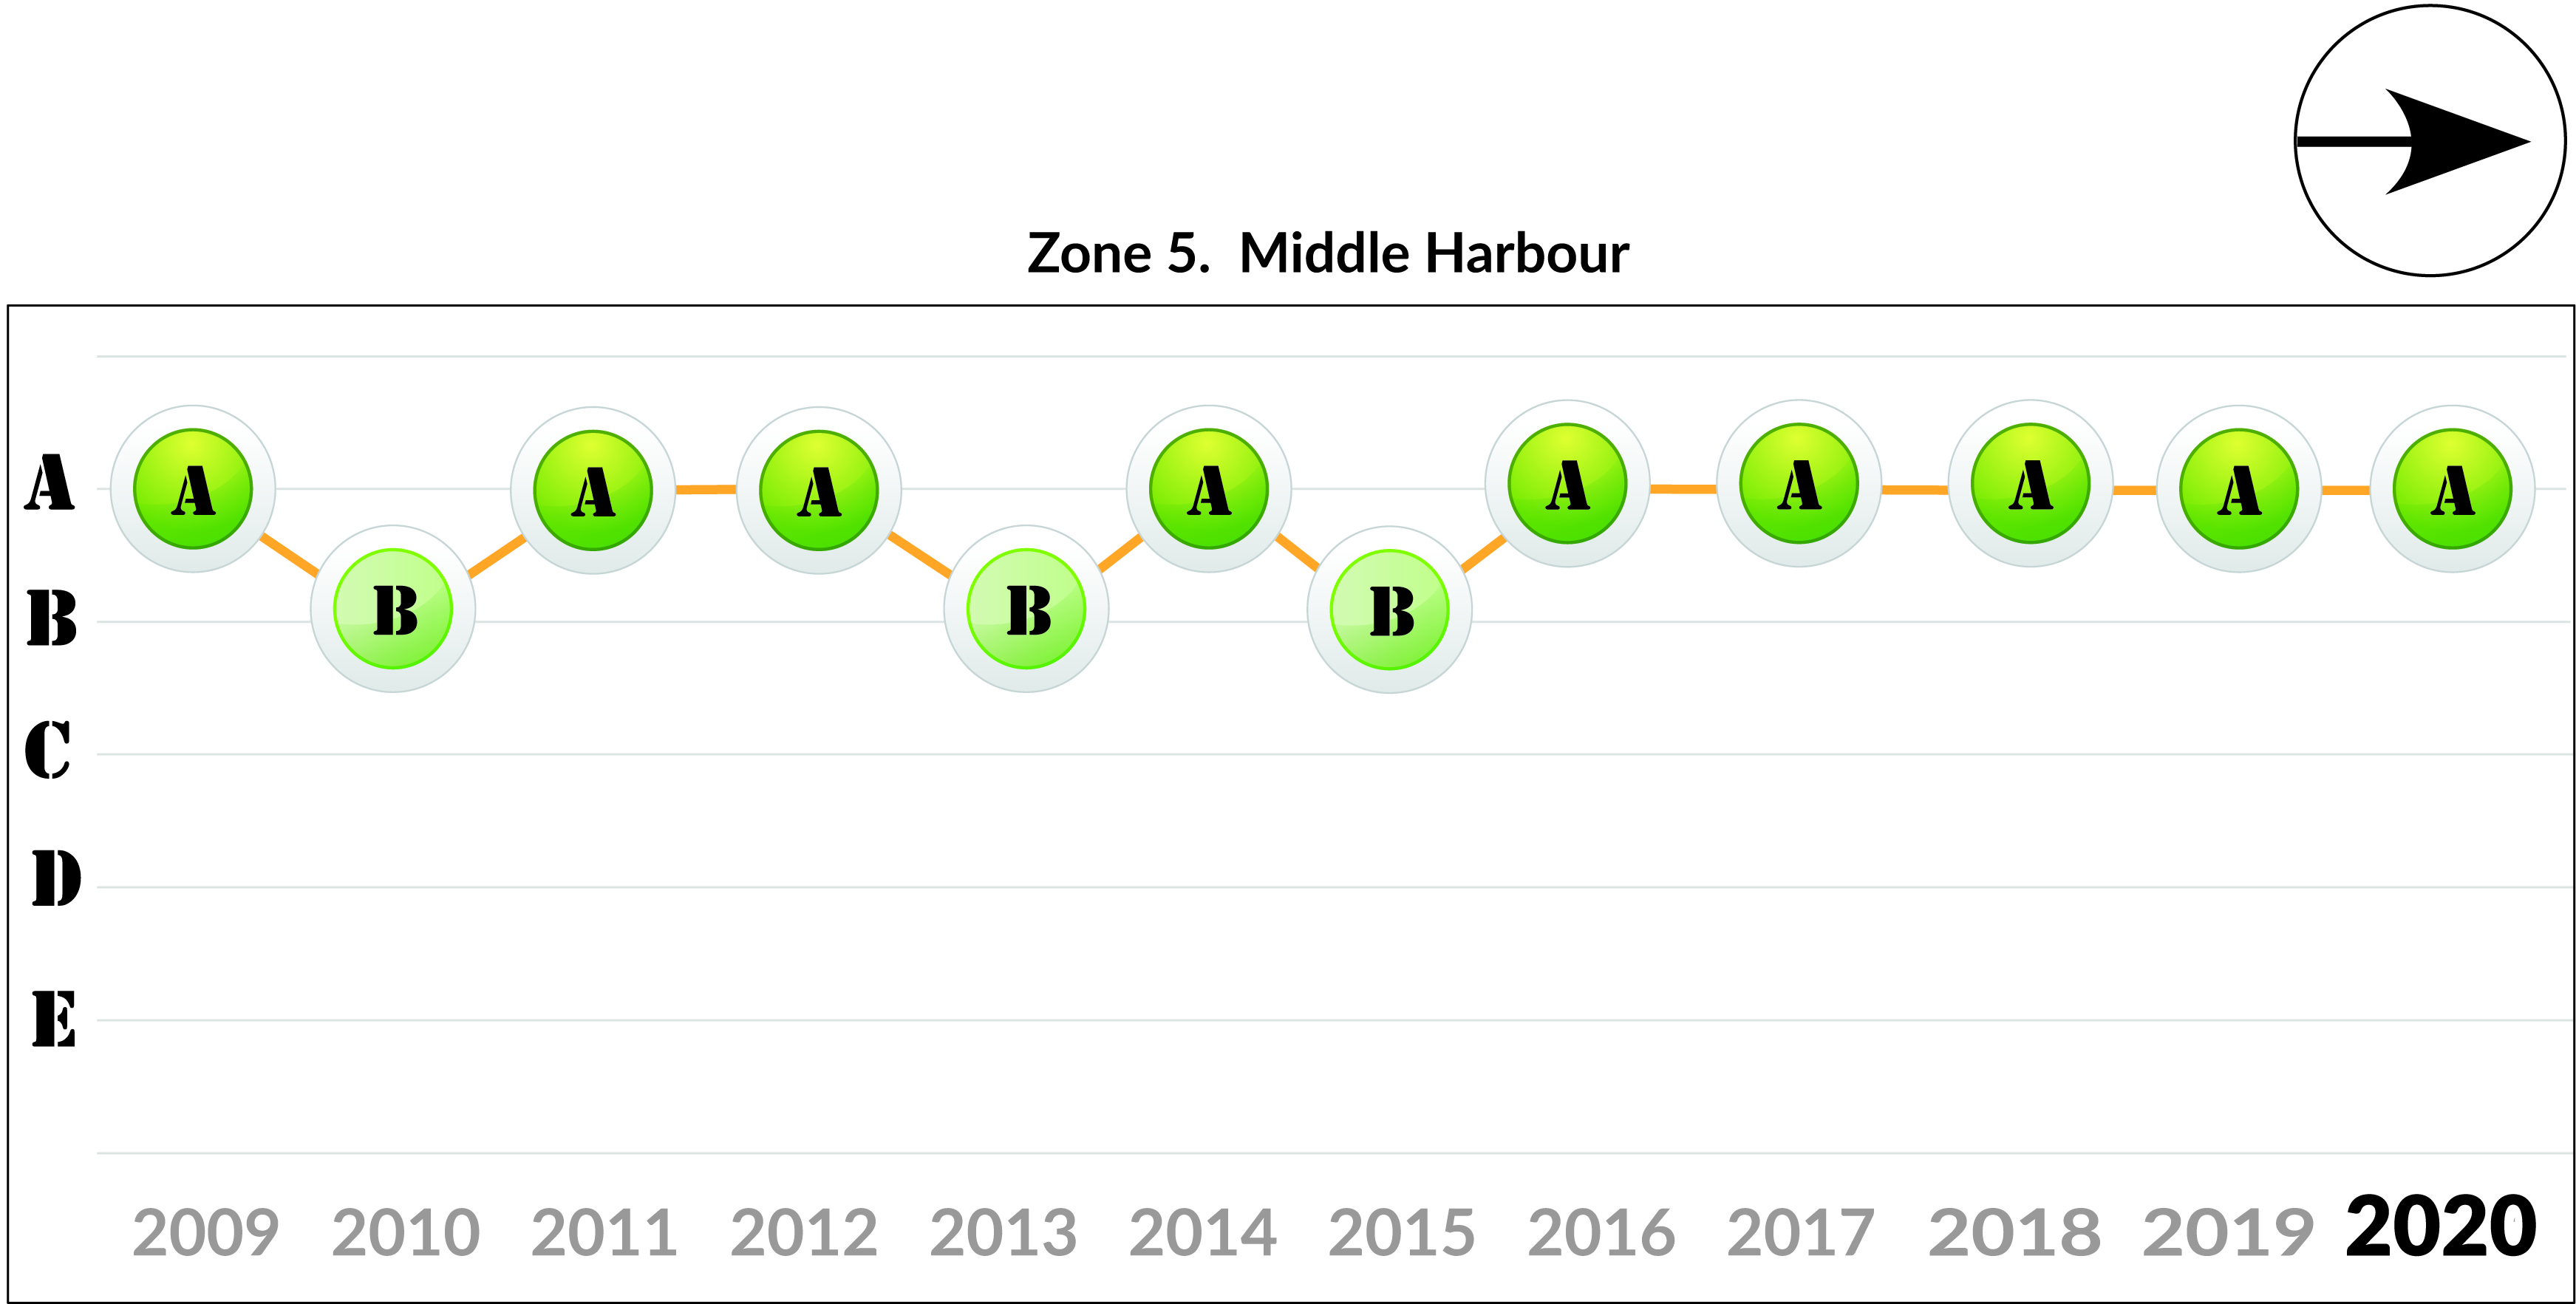 Zone 5 - Middle Harbour trend 2020